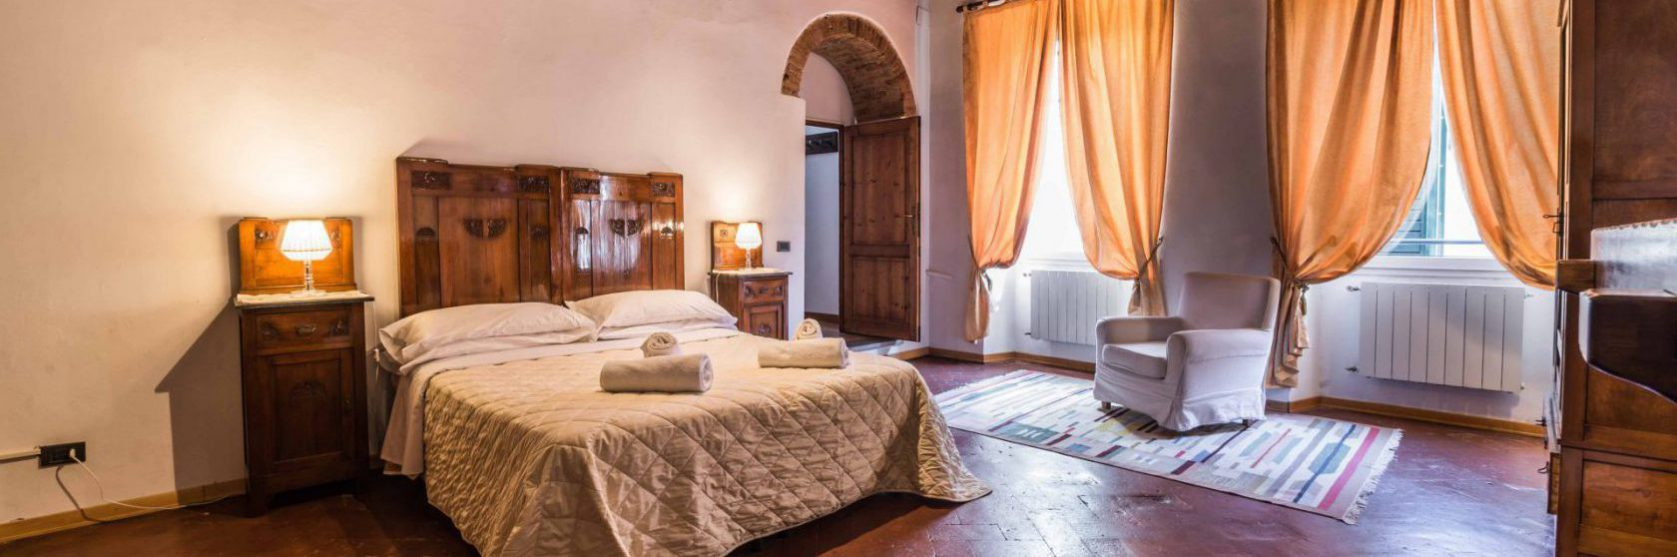 Header Picture 2 - Short and Long term rentals in Florence